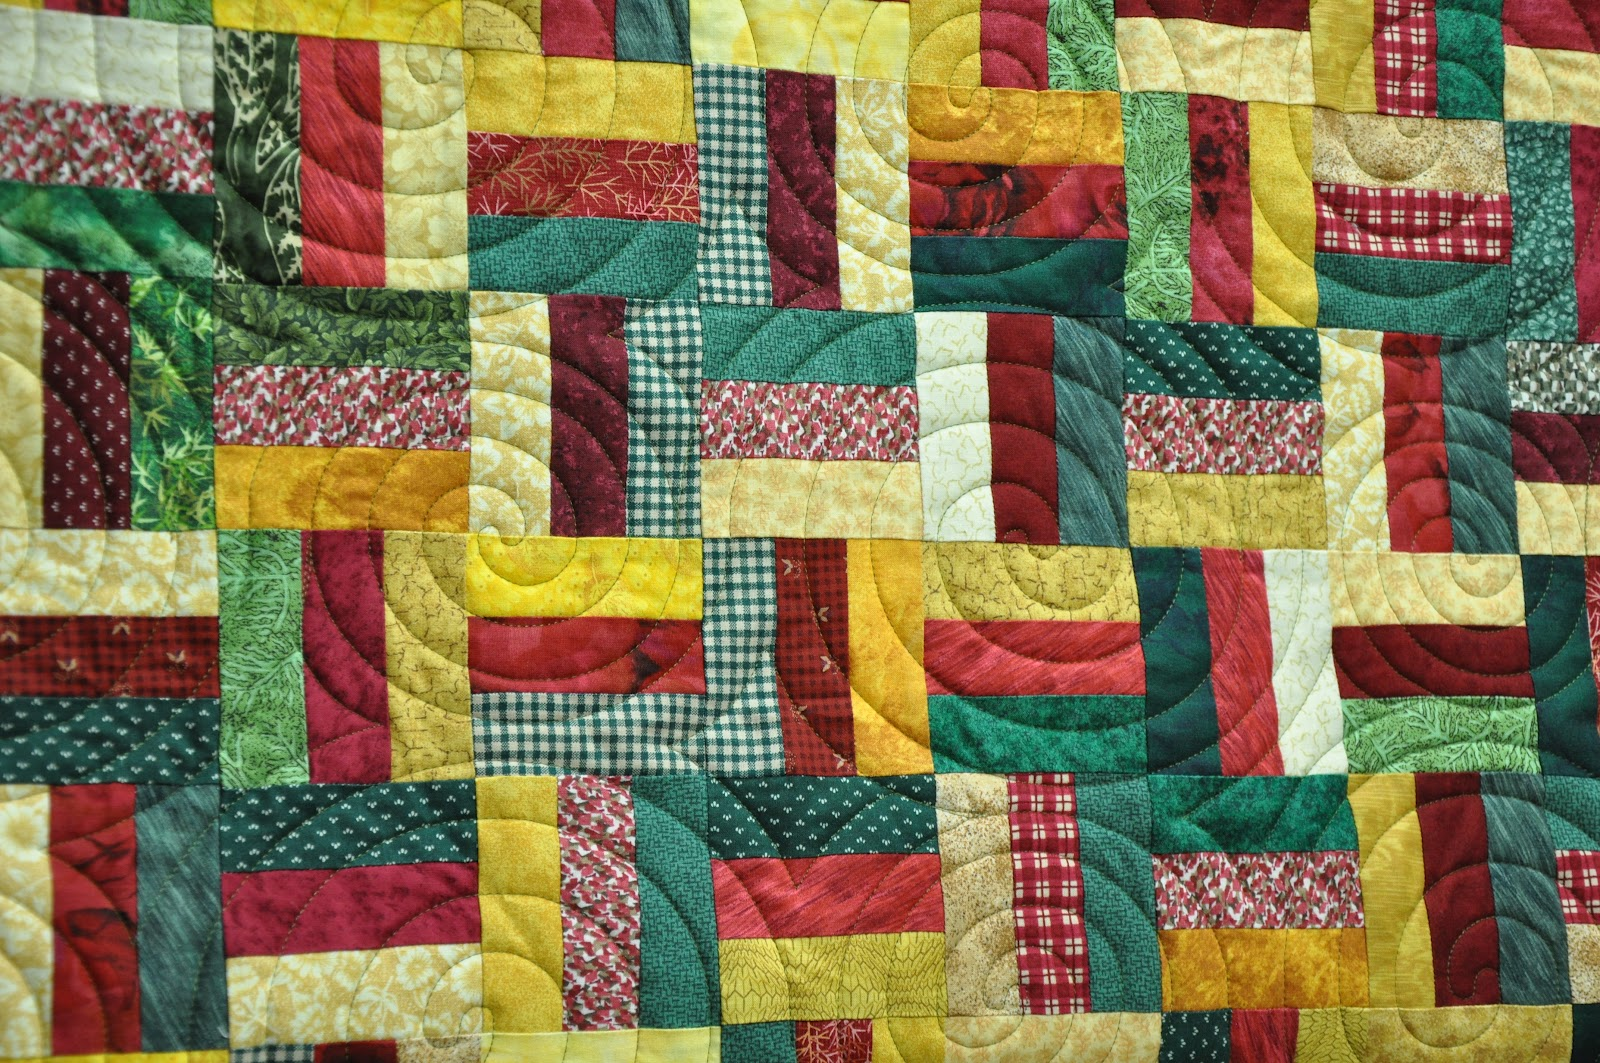 Silver Thimble Quilting: Fall Rail Fence - Quilted